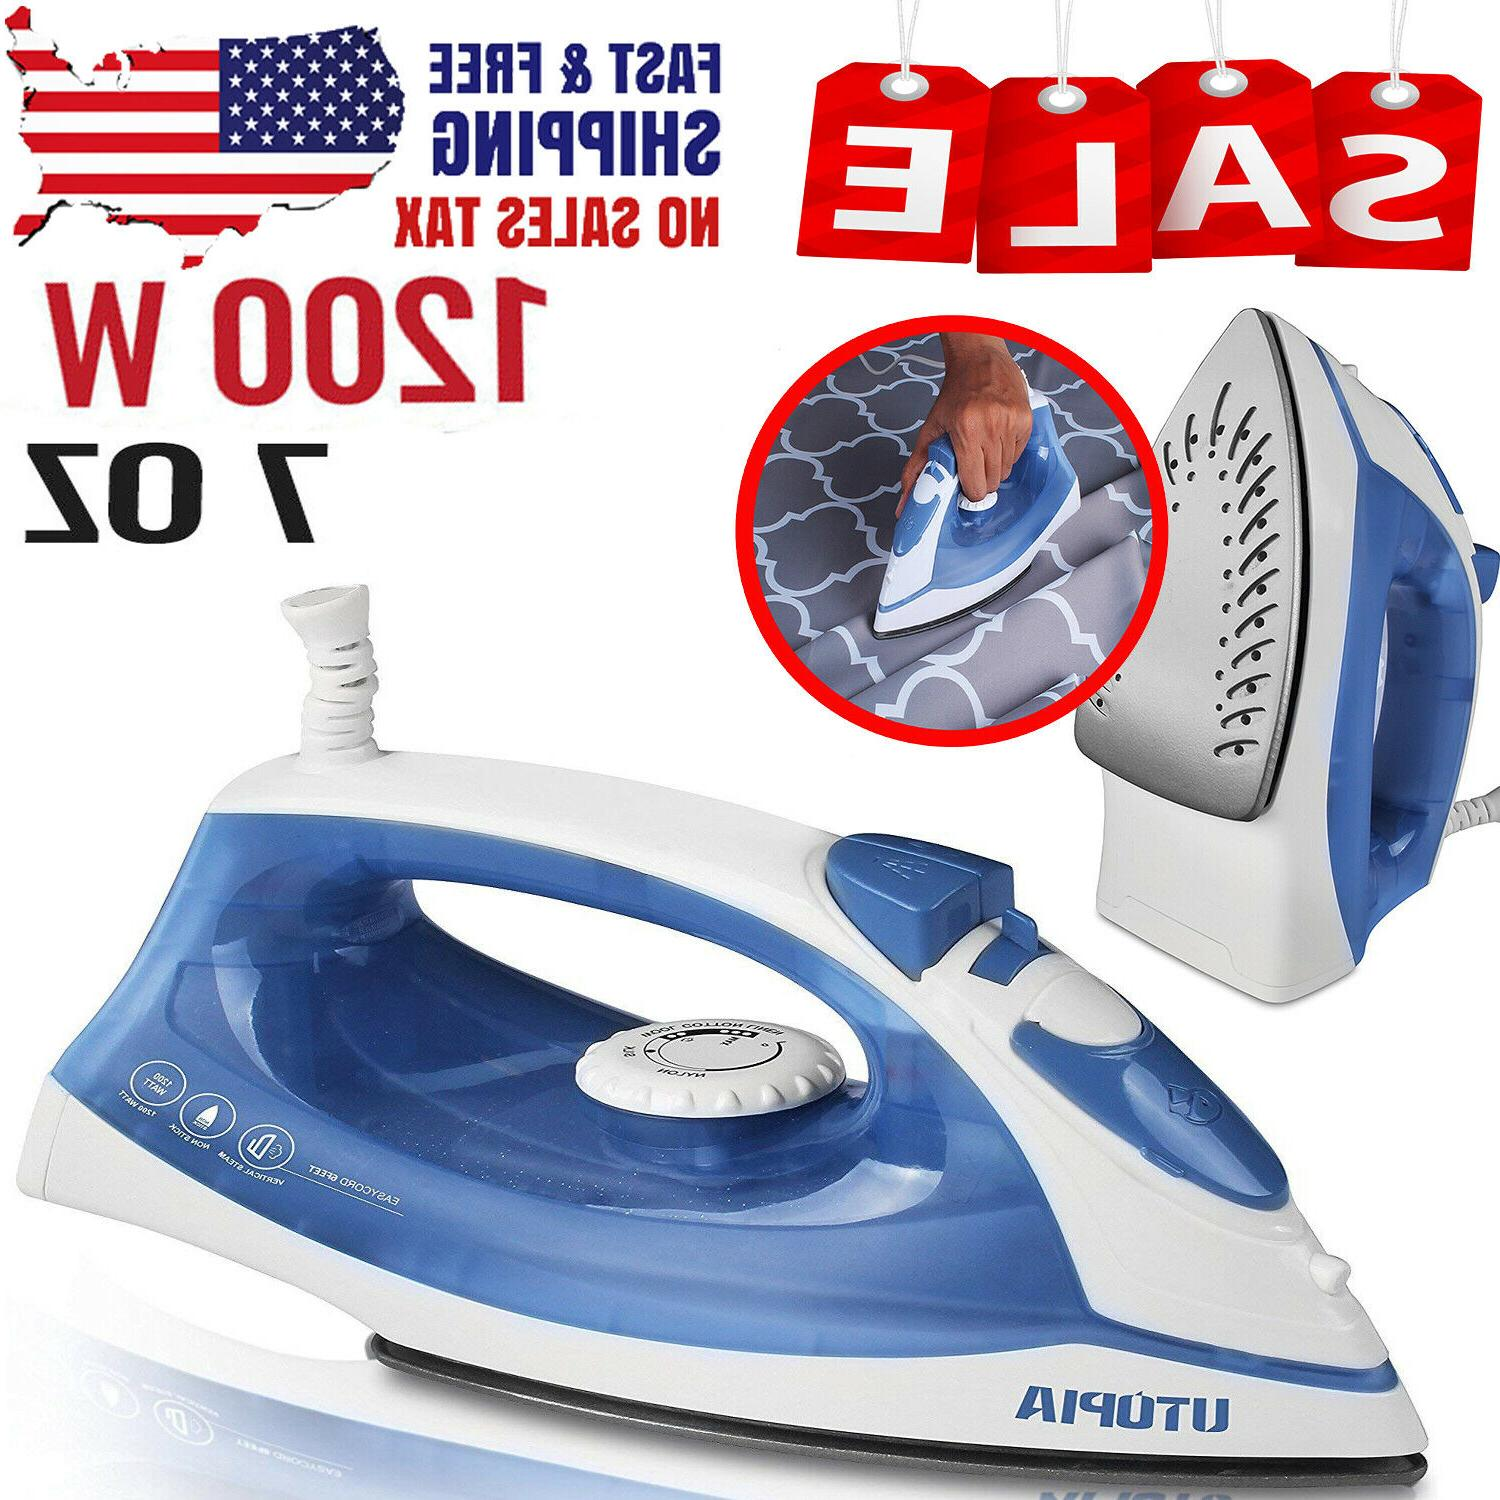 travel iron steam clothes small compact electric